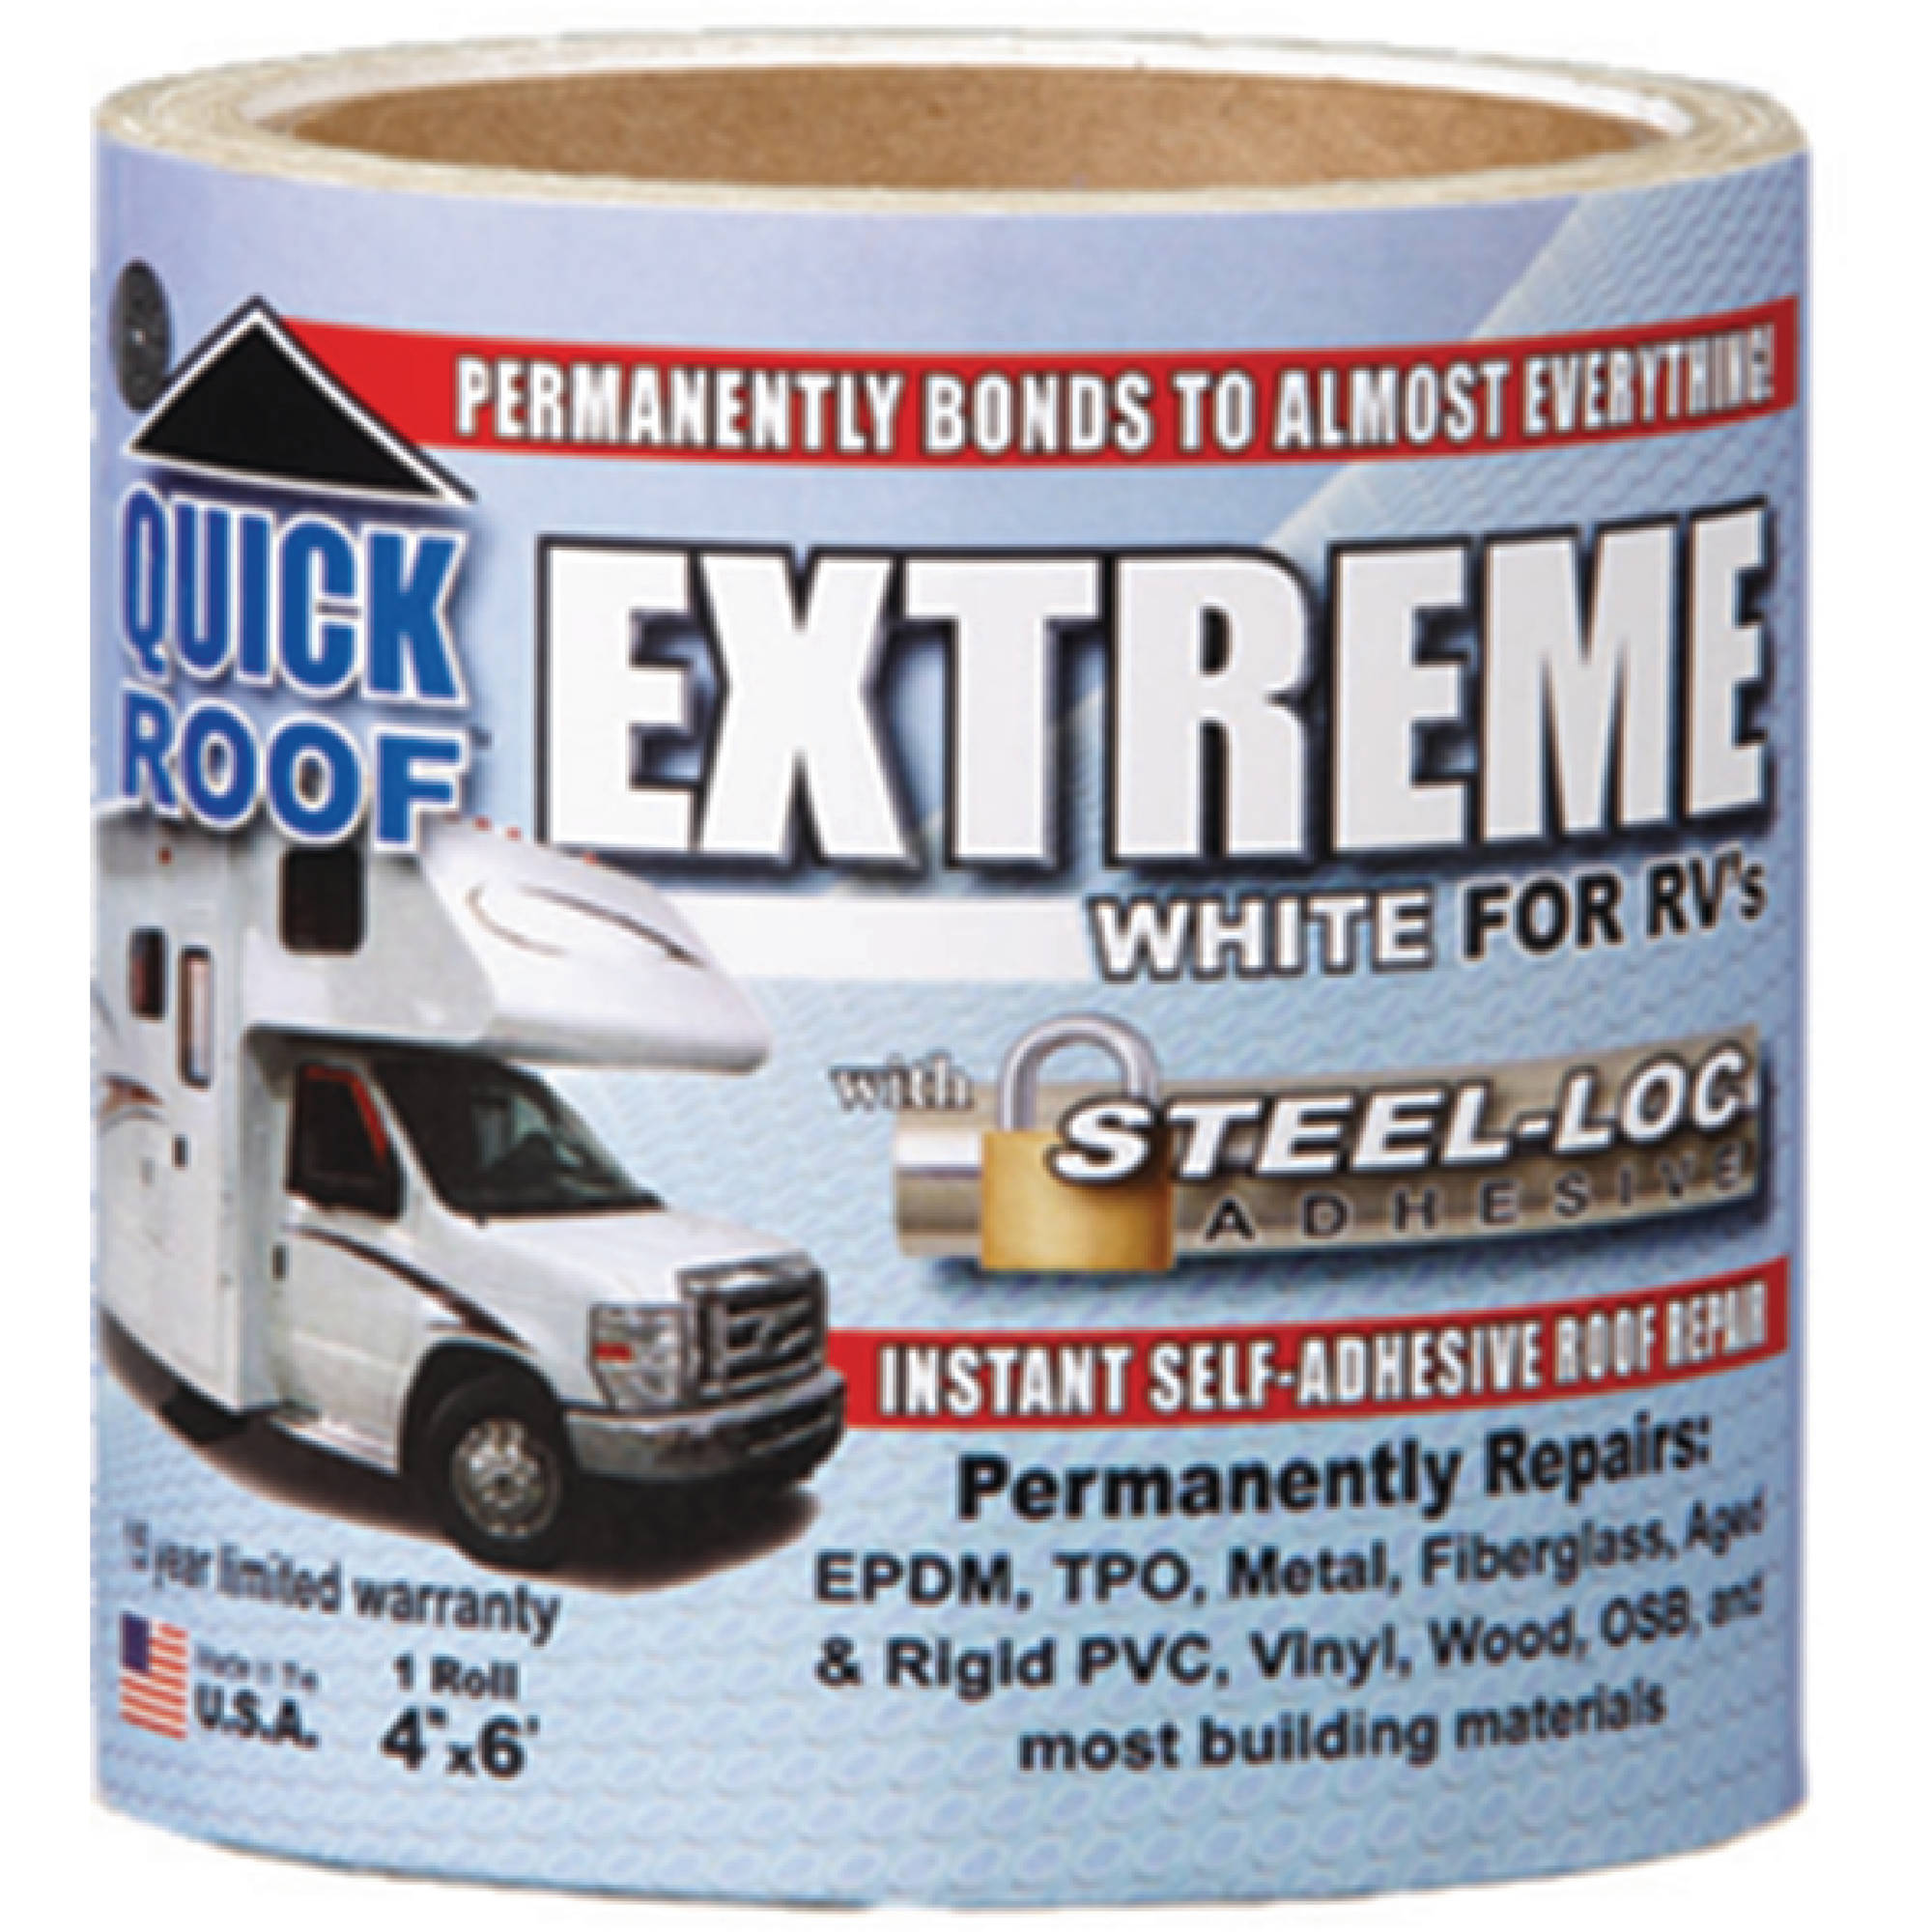 quick roof extreme white for rv s walmart